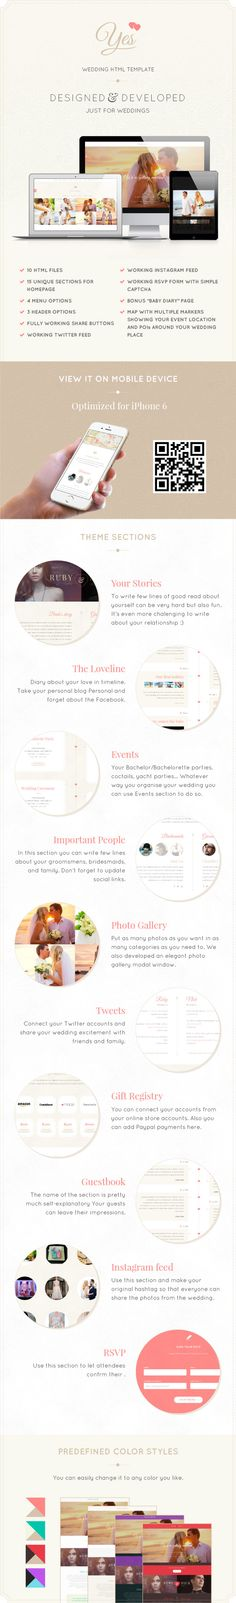 Yes is unique One Page HTML template that features unique sections made just for weddings, such as Couple Timeline, Event Timeline, Gift section, Guestbook timeline, RSVP Form and much more.